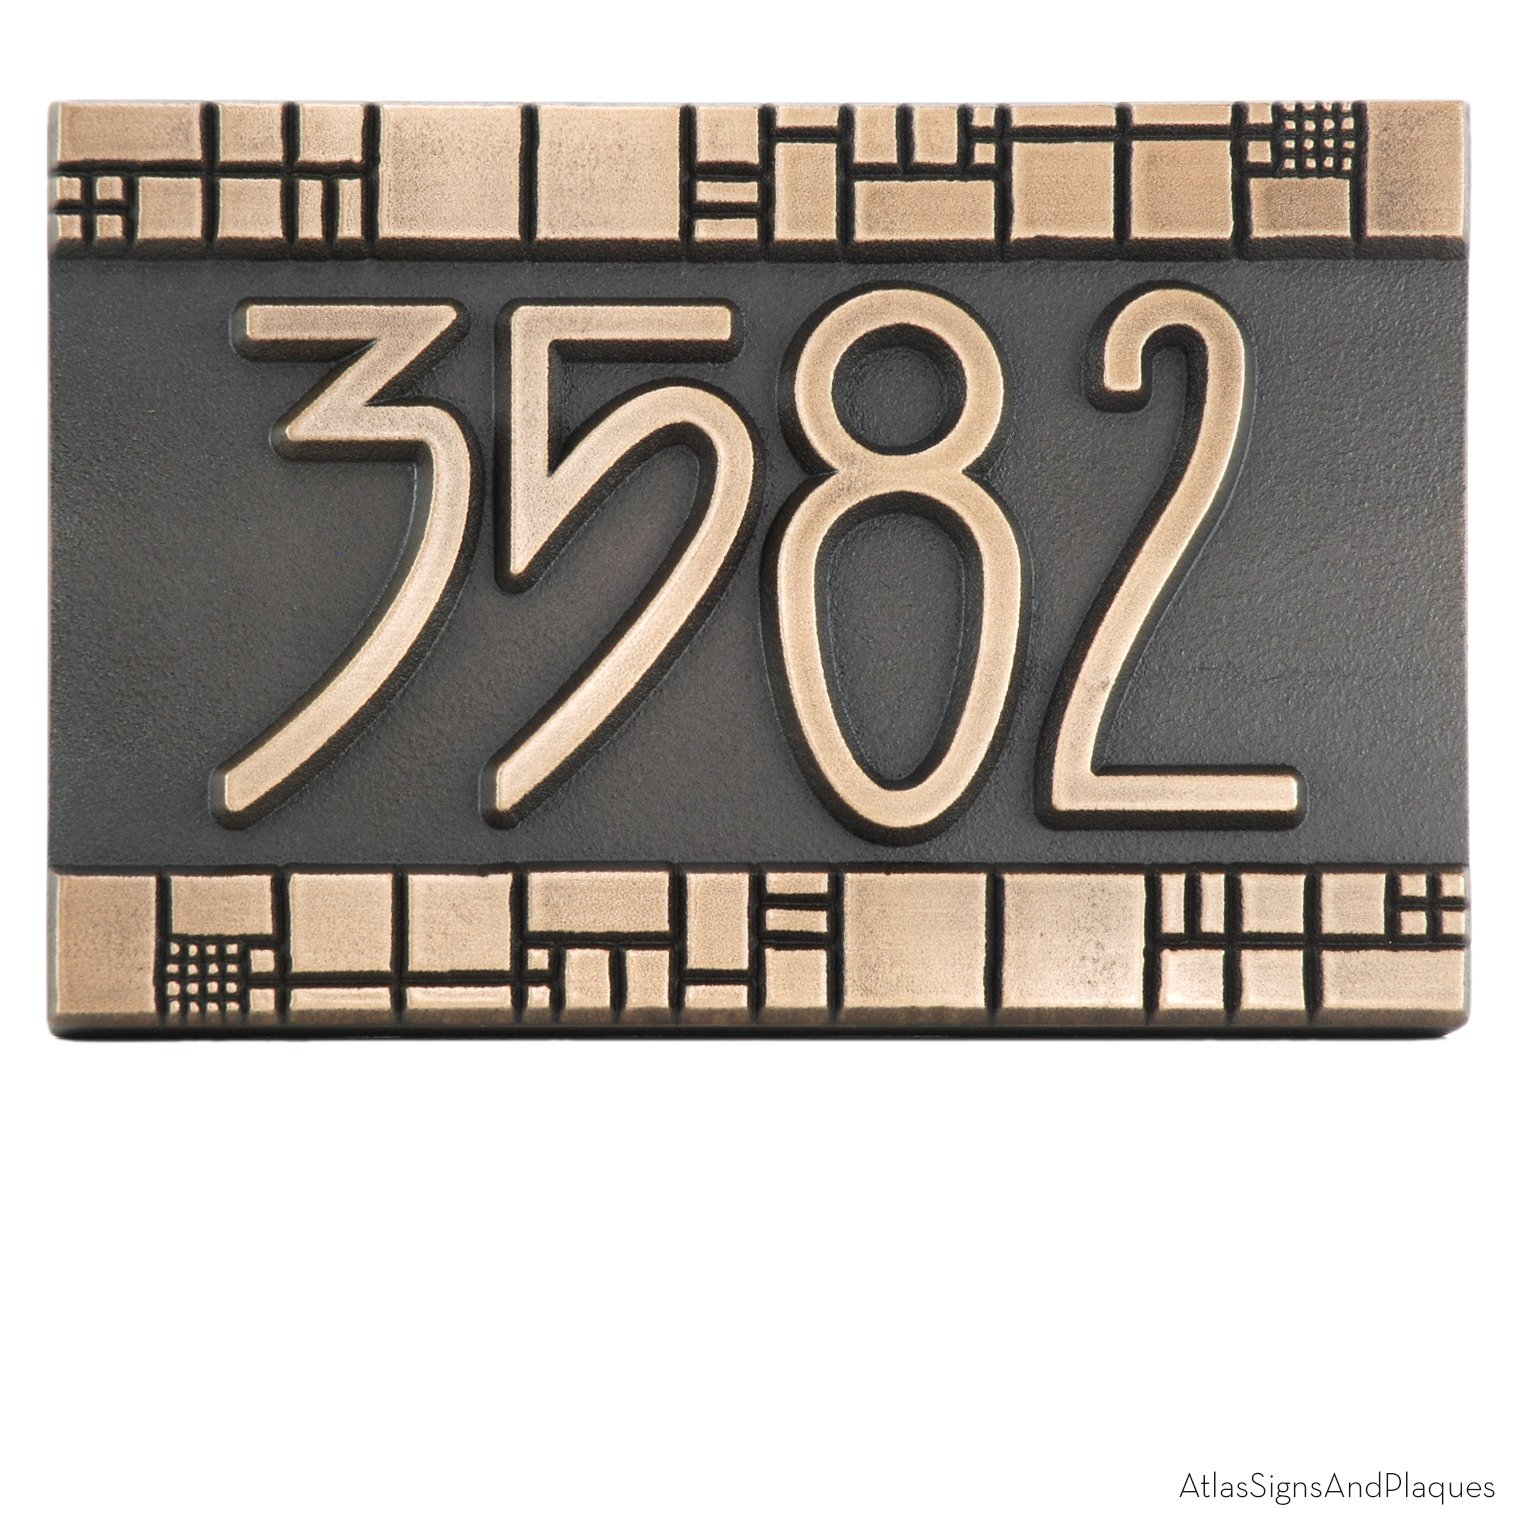 The Batchelder Tile Address Plaque 12x8 - Raised Bronze Patina Metal Coated by Atlas Signs and Plaques